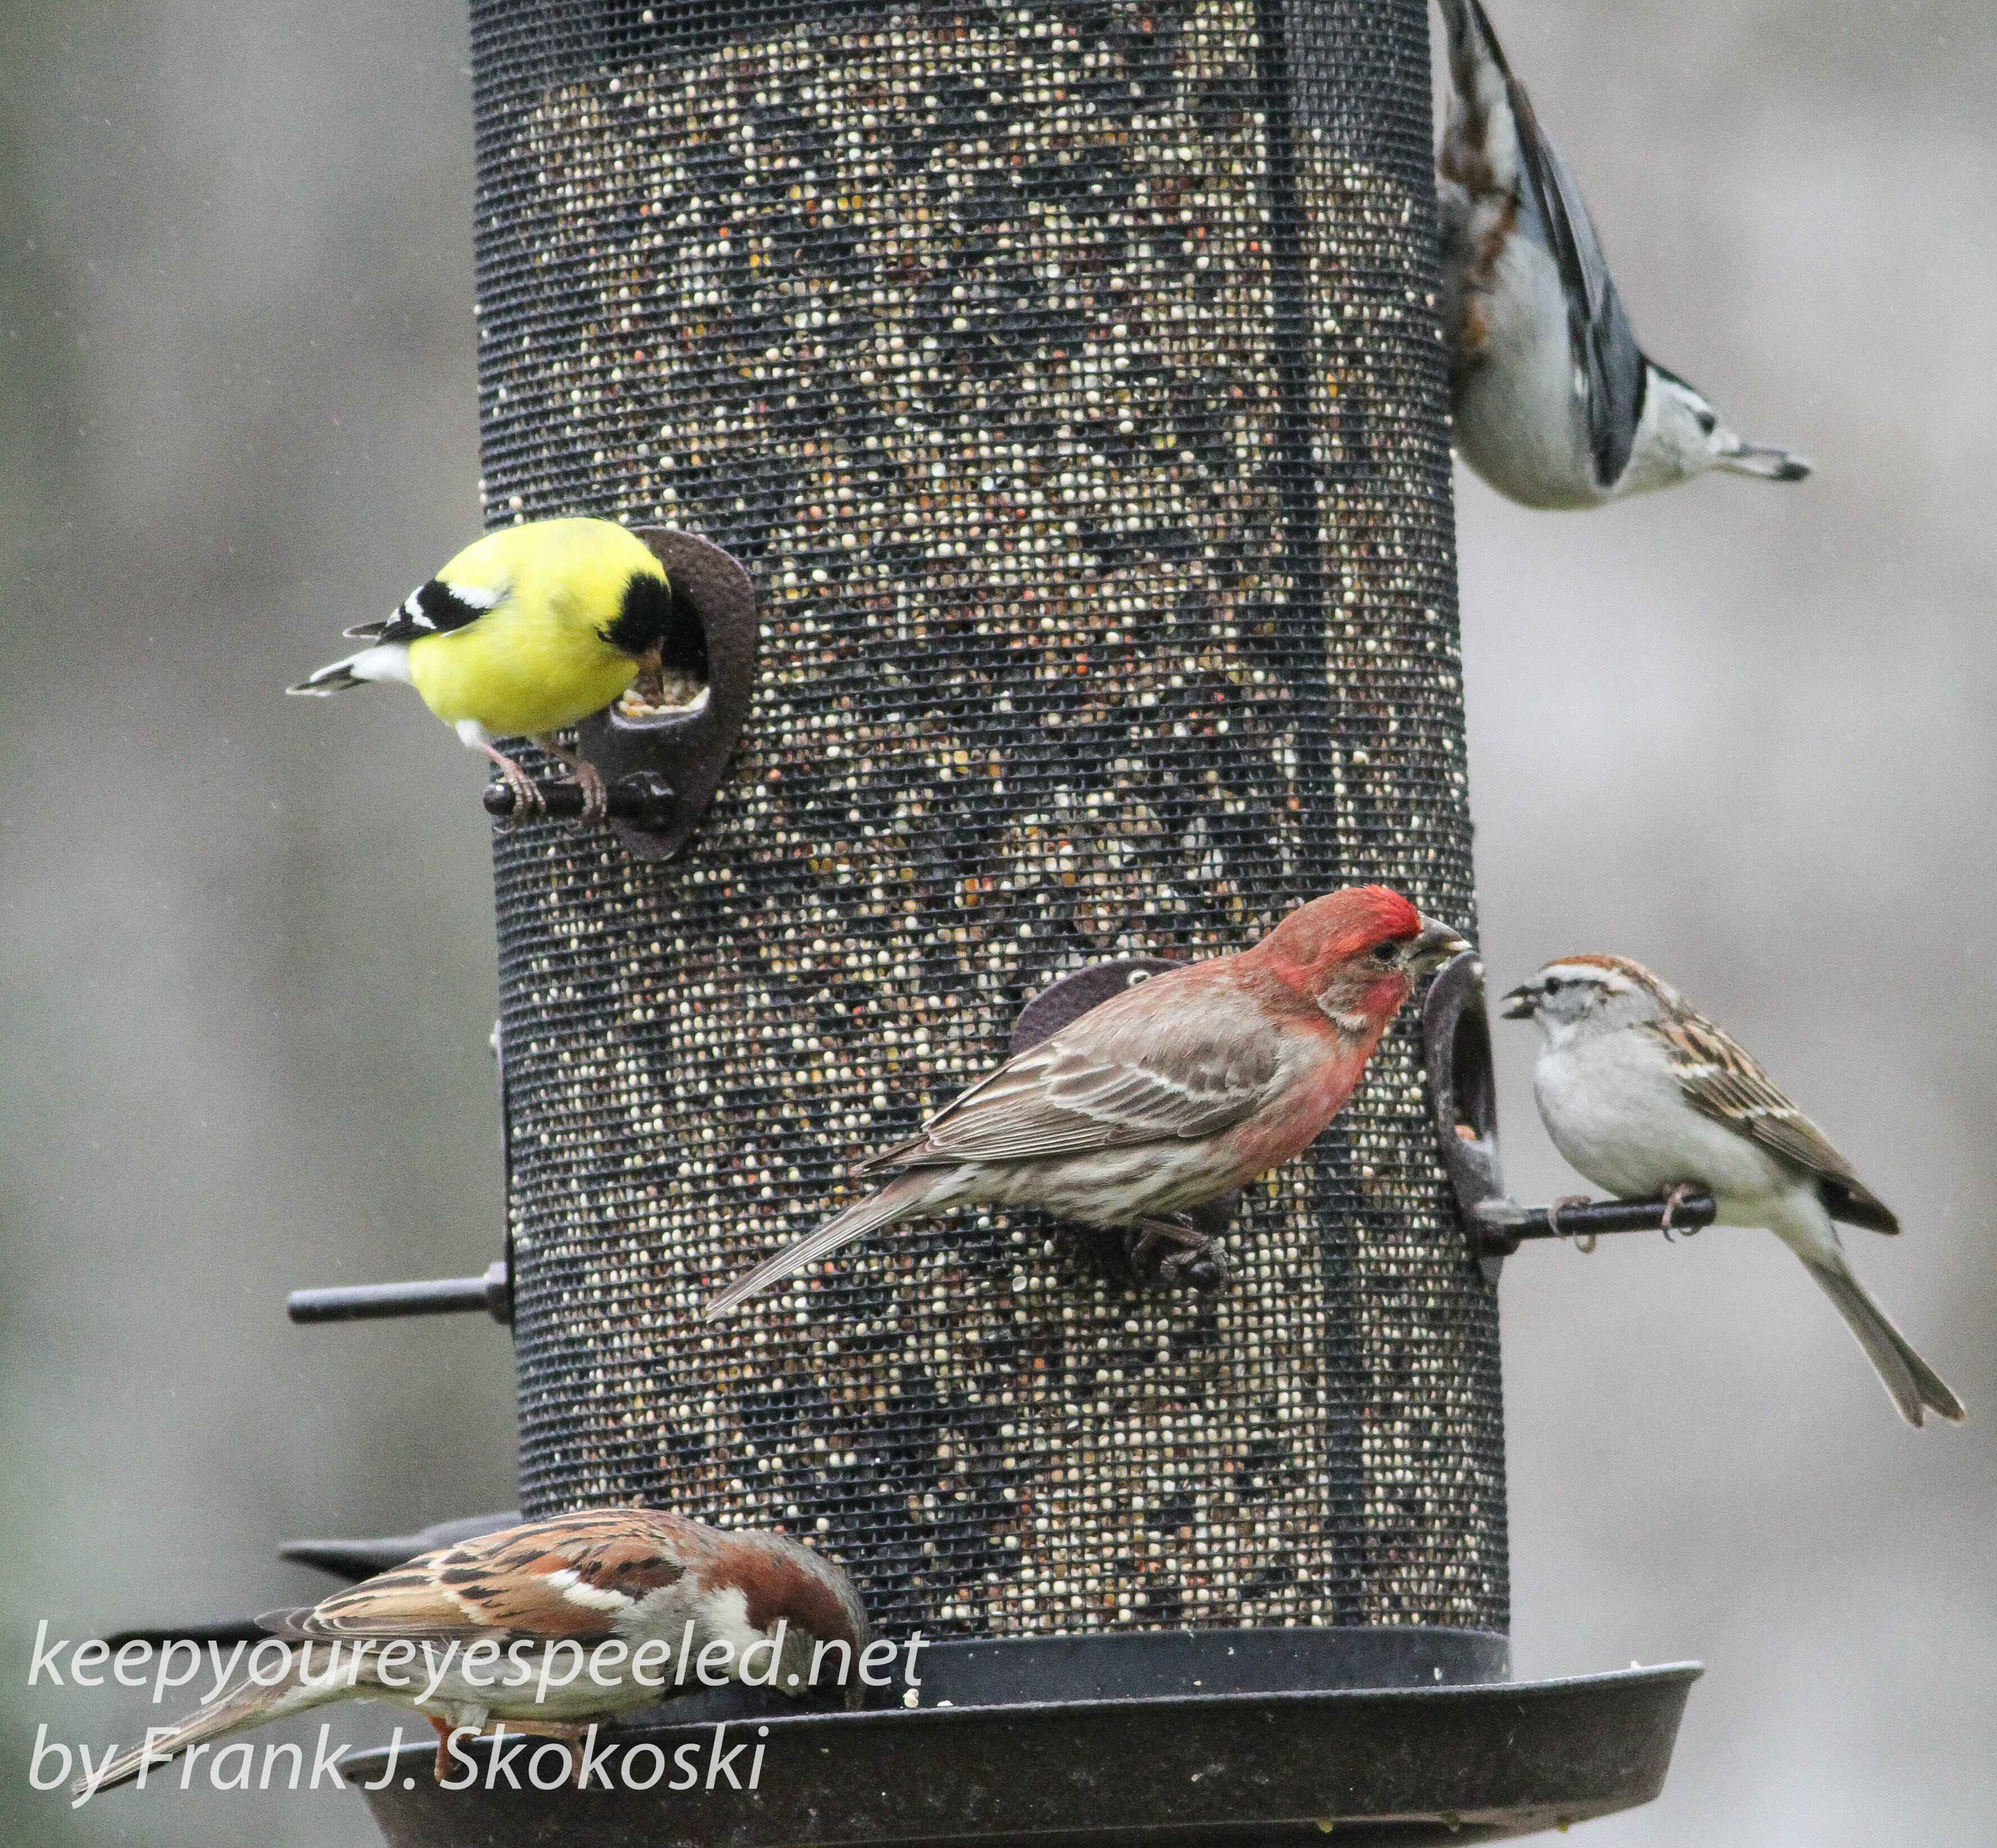 close to home again a feeding frenzy and new arrivals at my